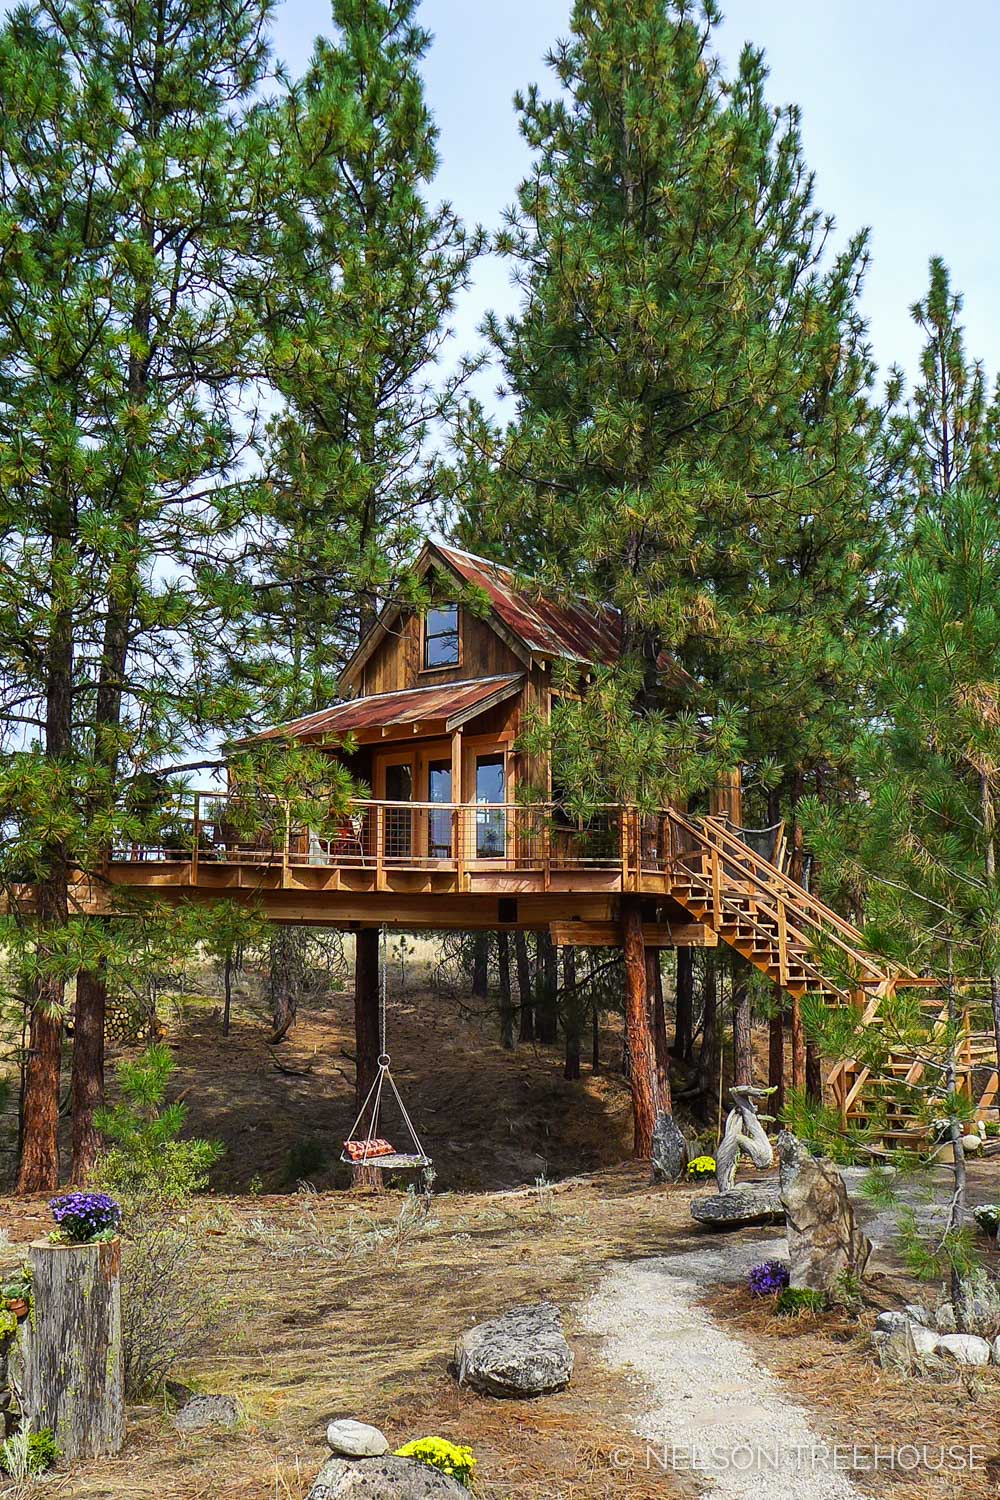 FAR OUT HIDEOUT    Location:  Eastern Washington  Year Built:  2017  Square Feet:  200  Elevation:  13 ft Fully tree-supported  Seasonality:  All-season    CLICK FOR PHOTO TOUR >>